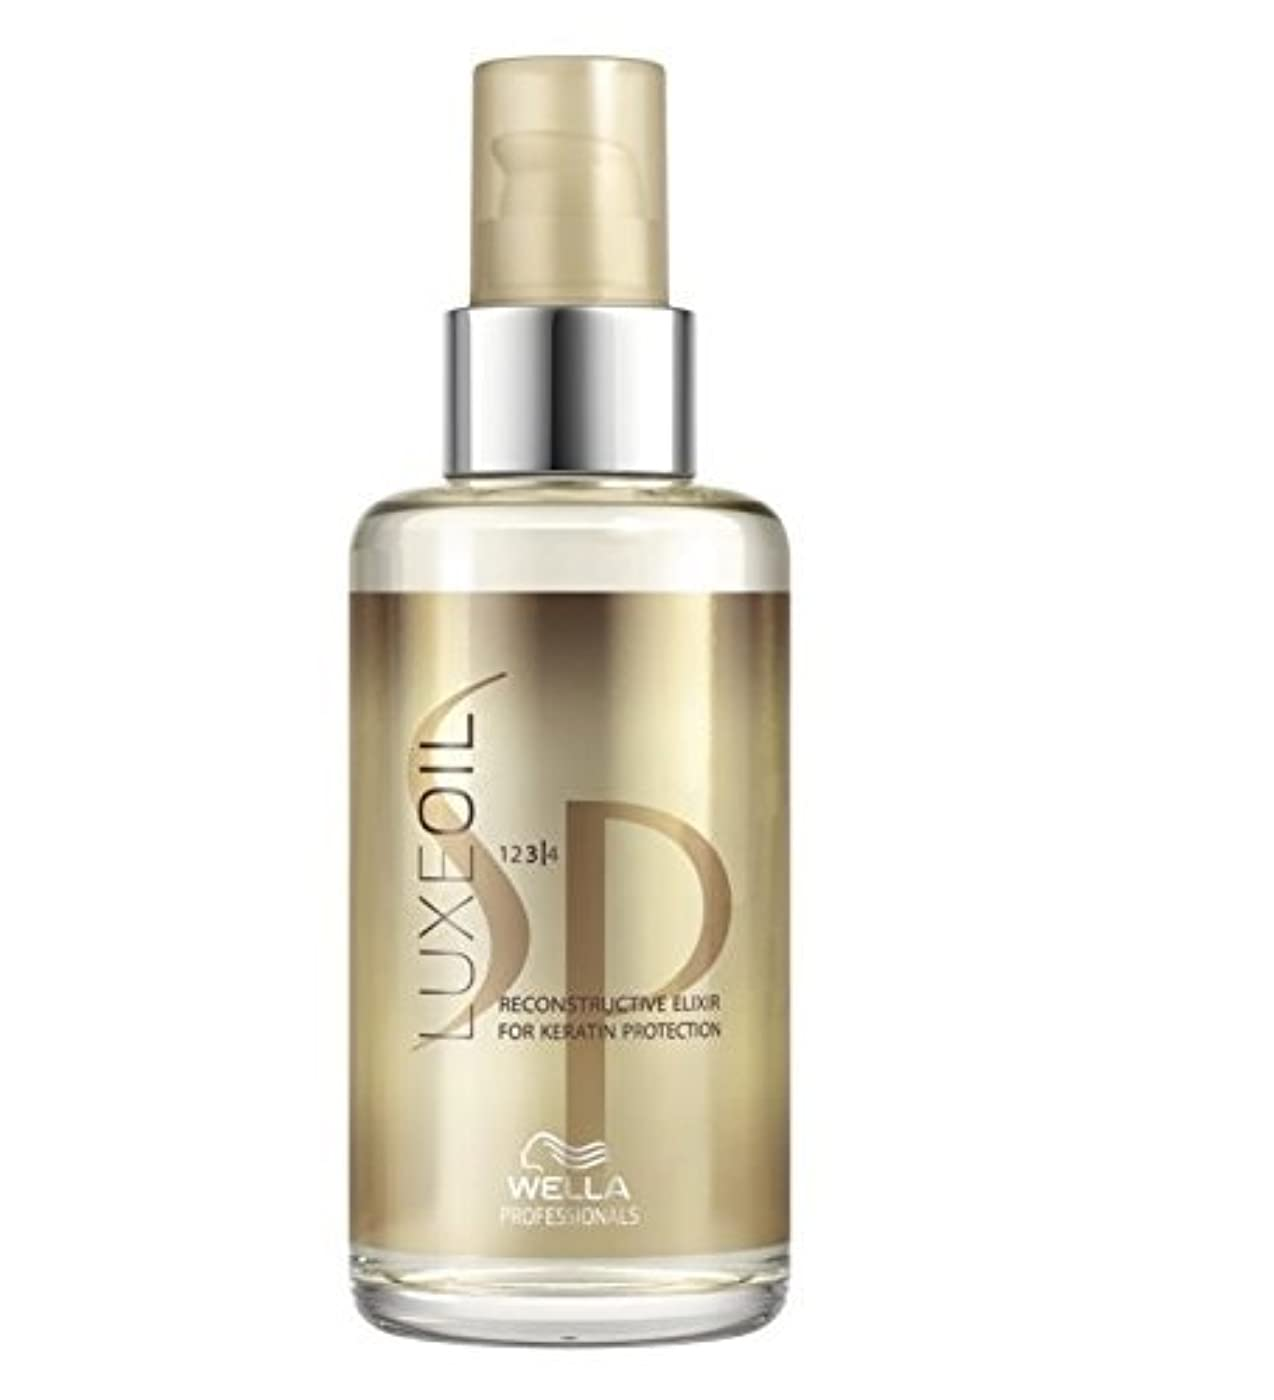 経由でつなぐ。SP by Wella Luxe Hair Oil Reconstructive Elixir 100ml by Wella [並行輸入品]